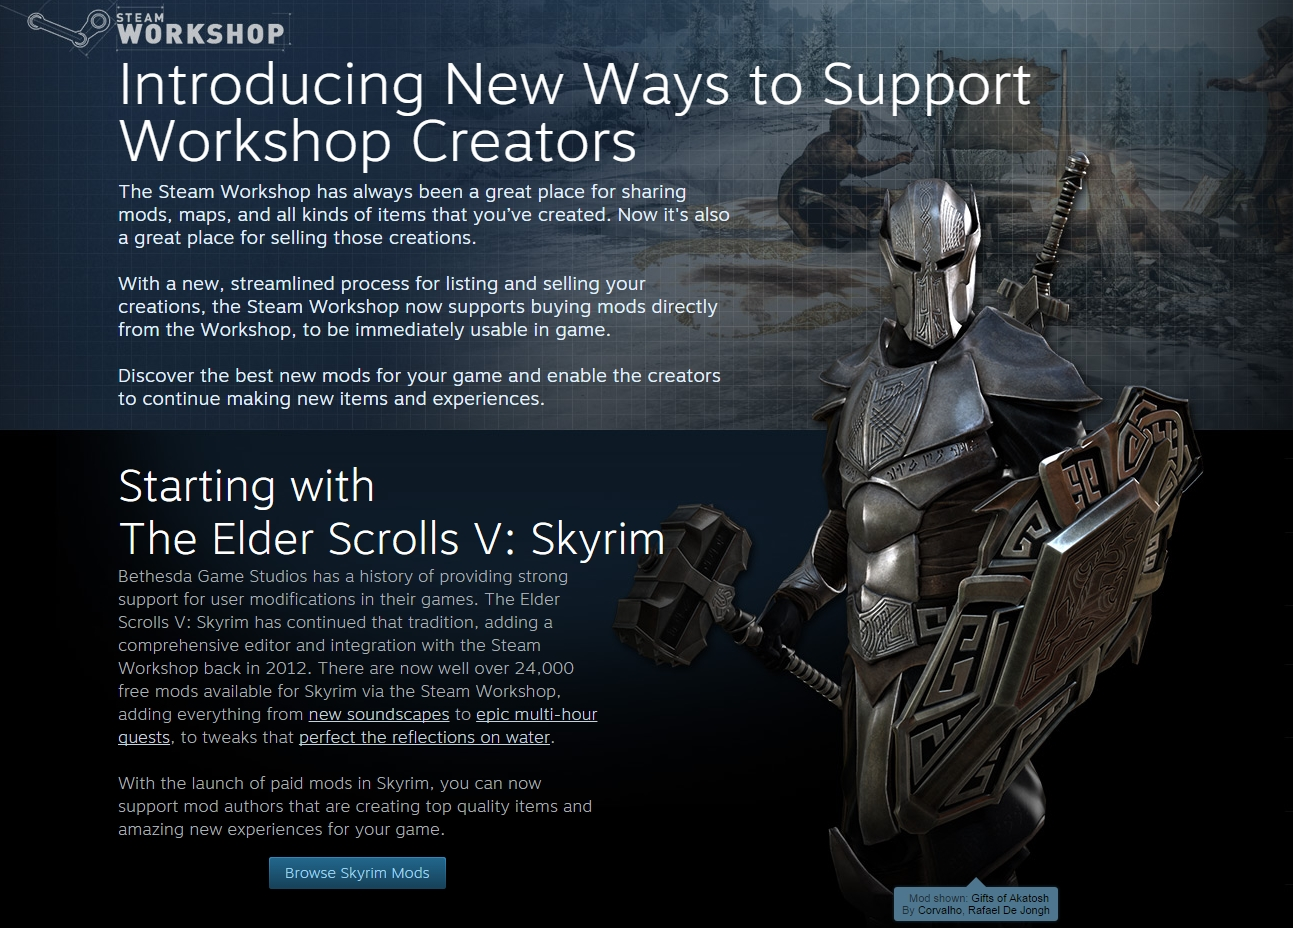 Introducing New Ways to Support Workshop Creators [Steam